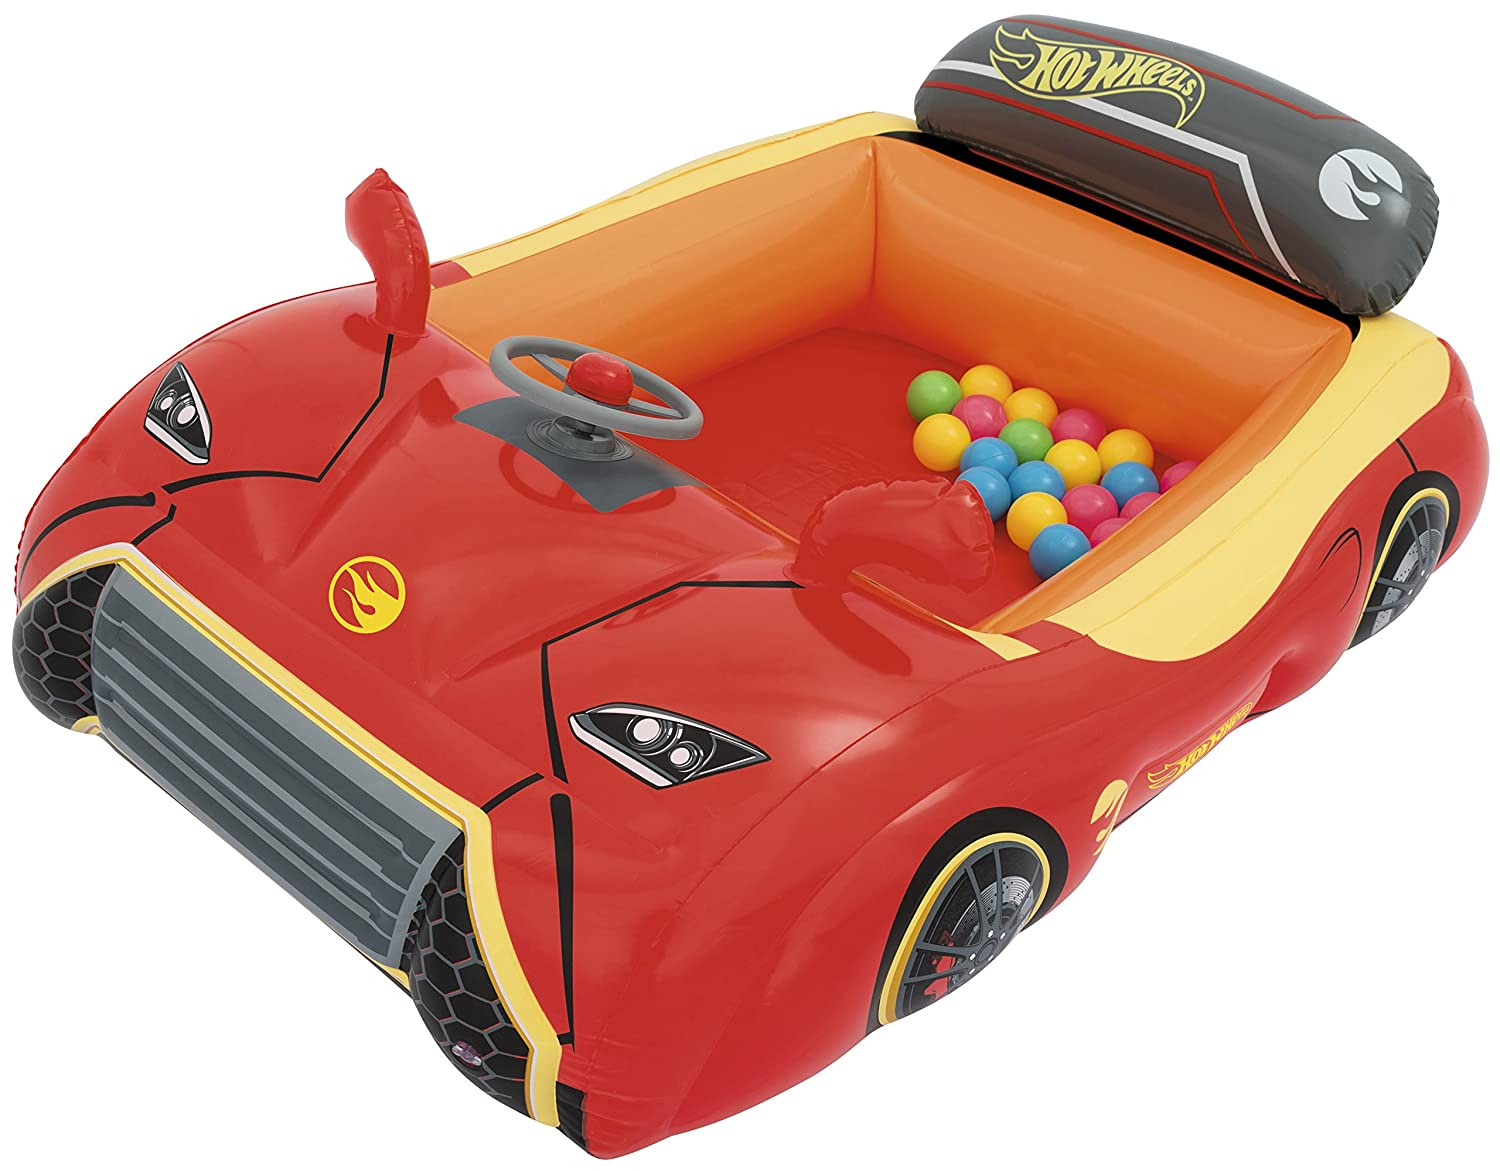 Bestway Hot Wheels Children's Inflatable Car Ball Pit, Includes 25 Balls 93404